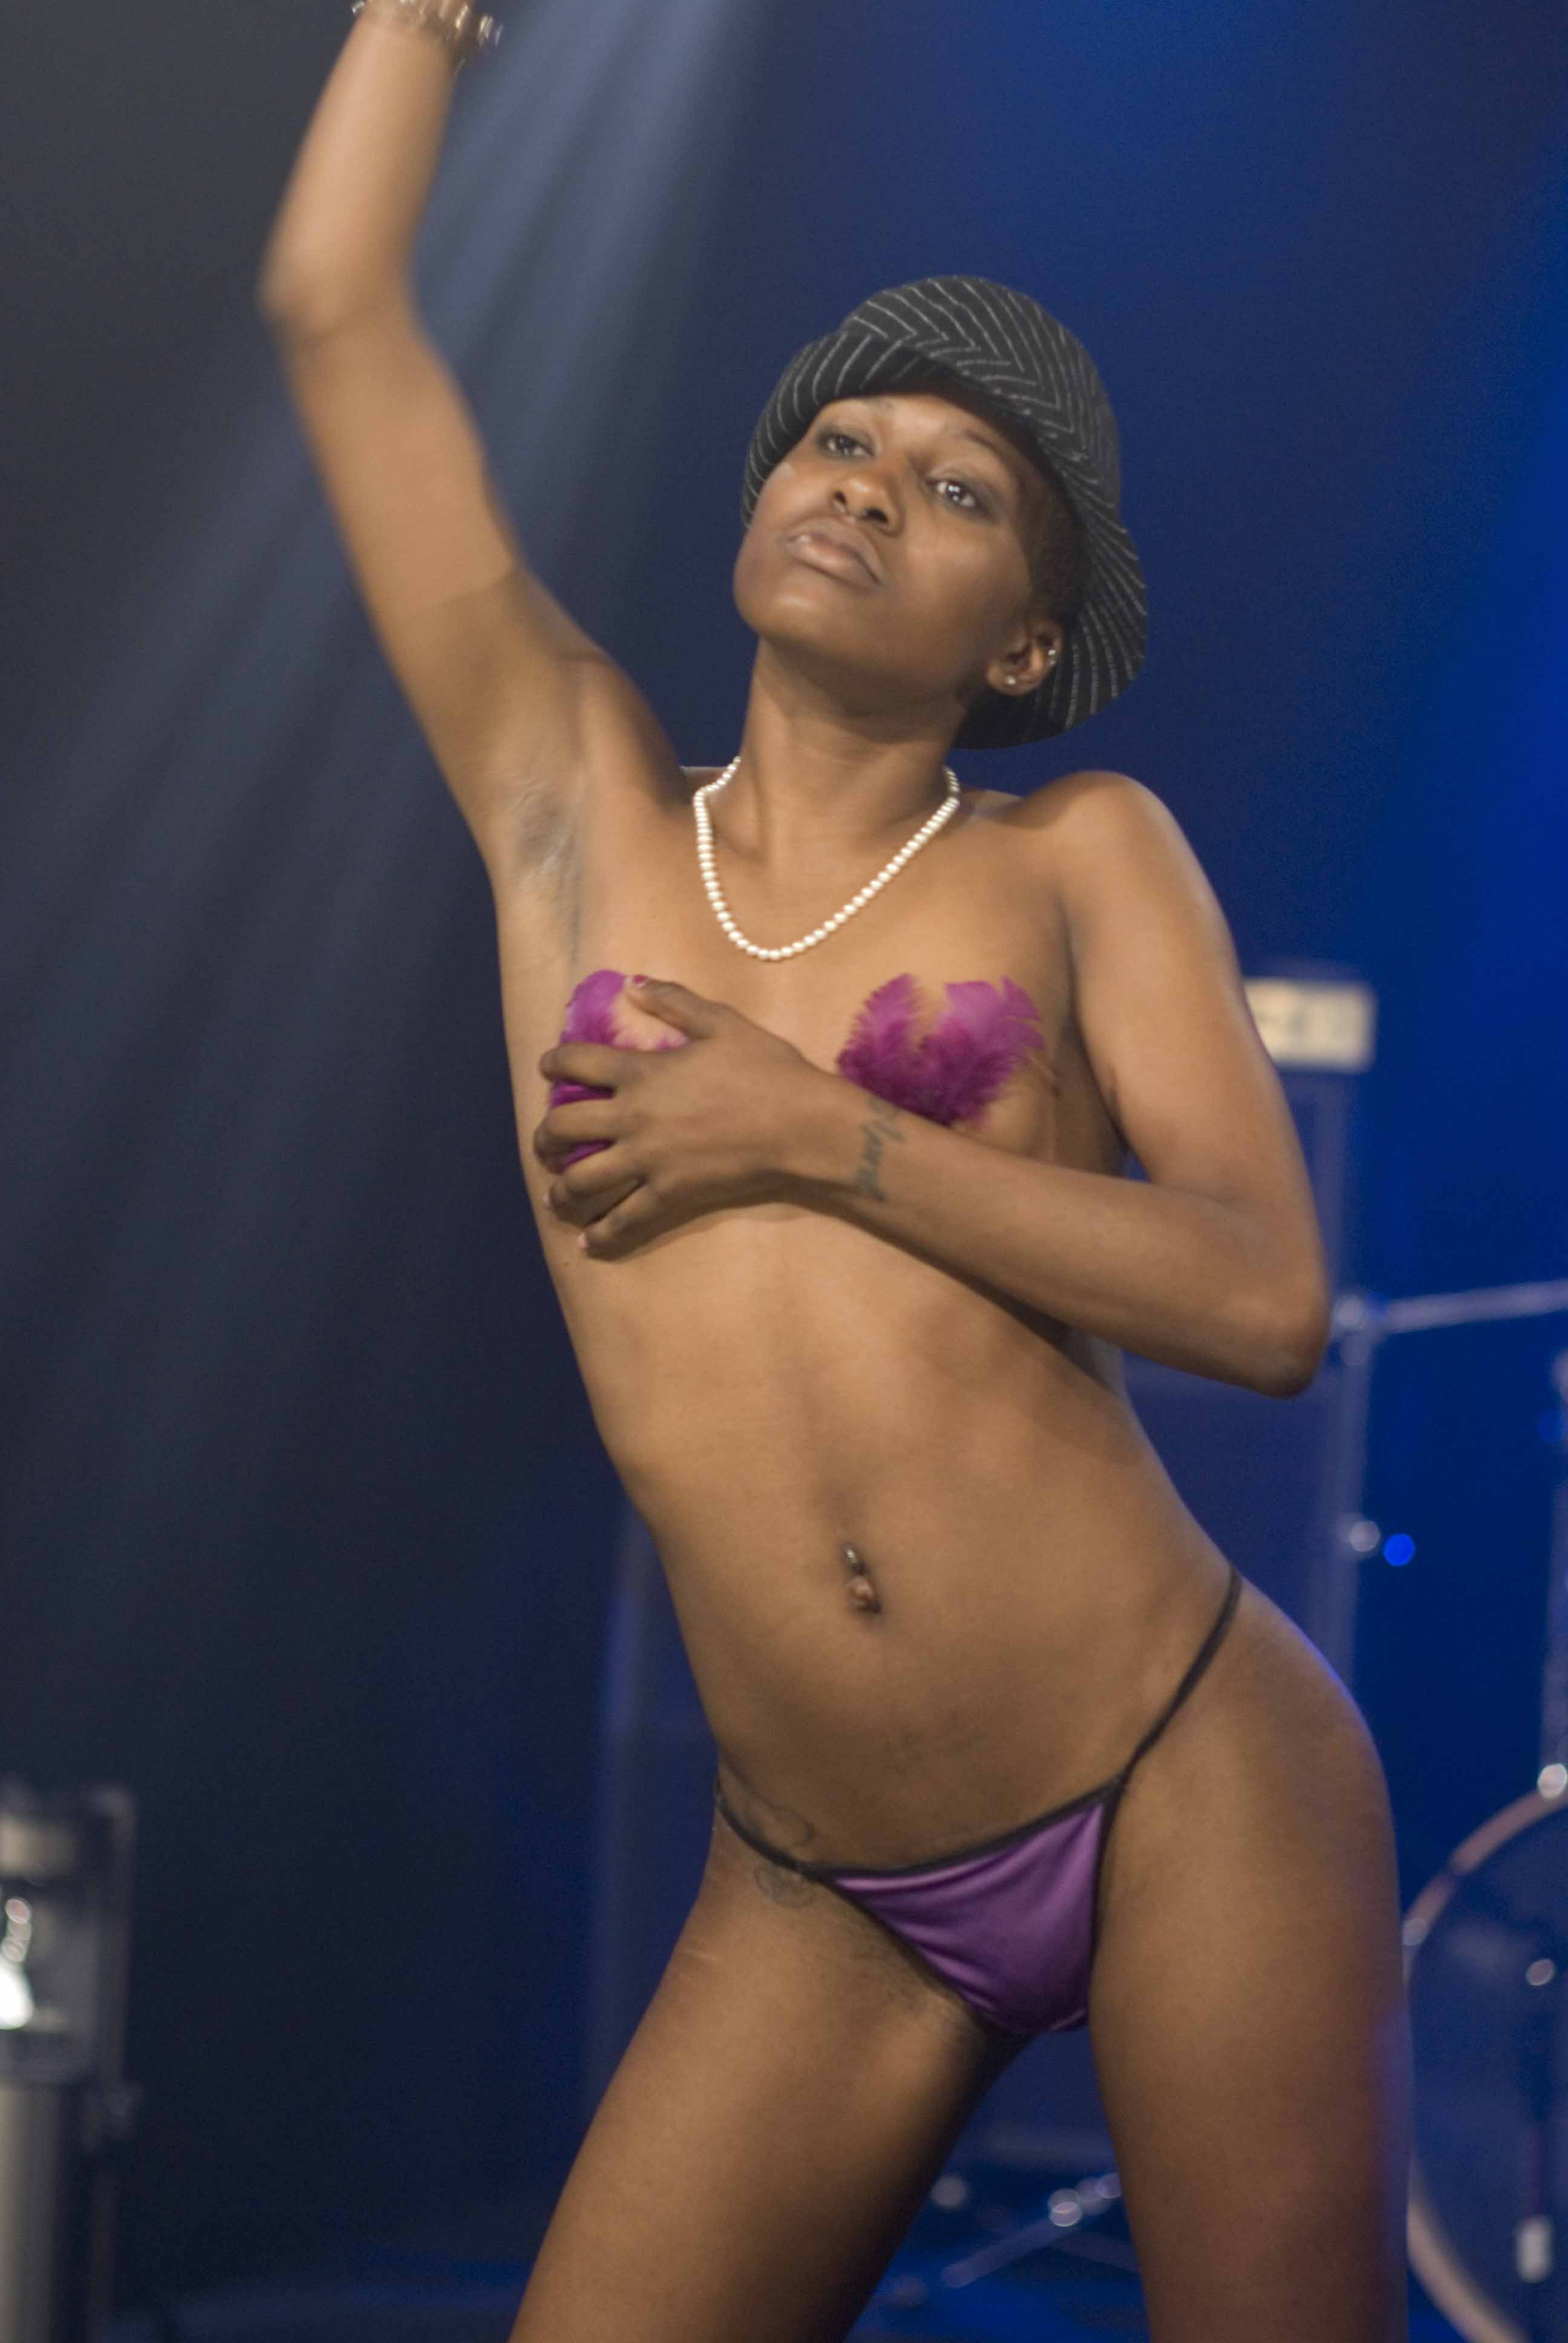 low-rez-jbtv-burlesque0633.jpg